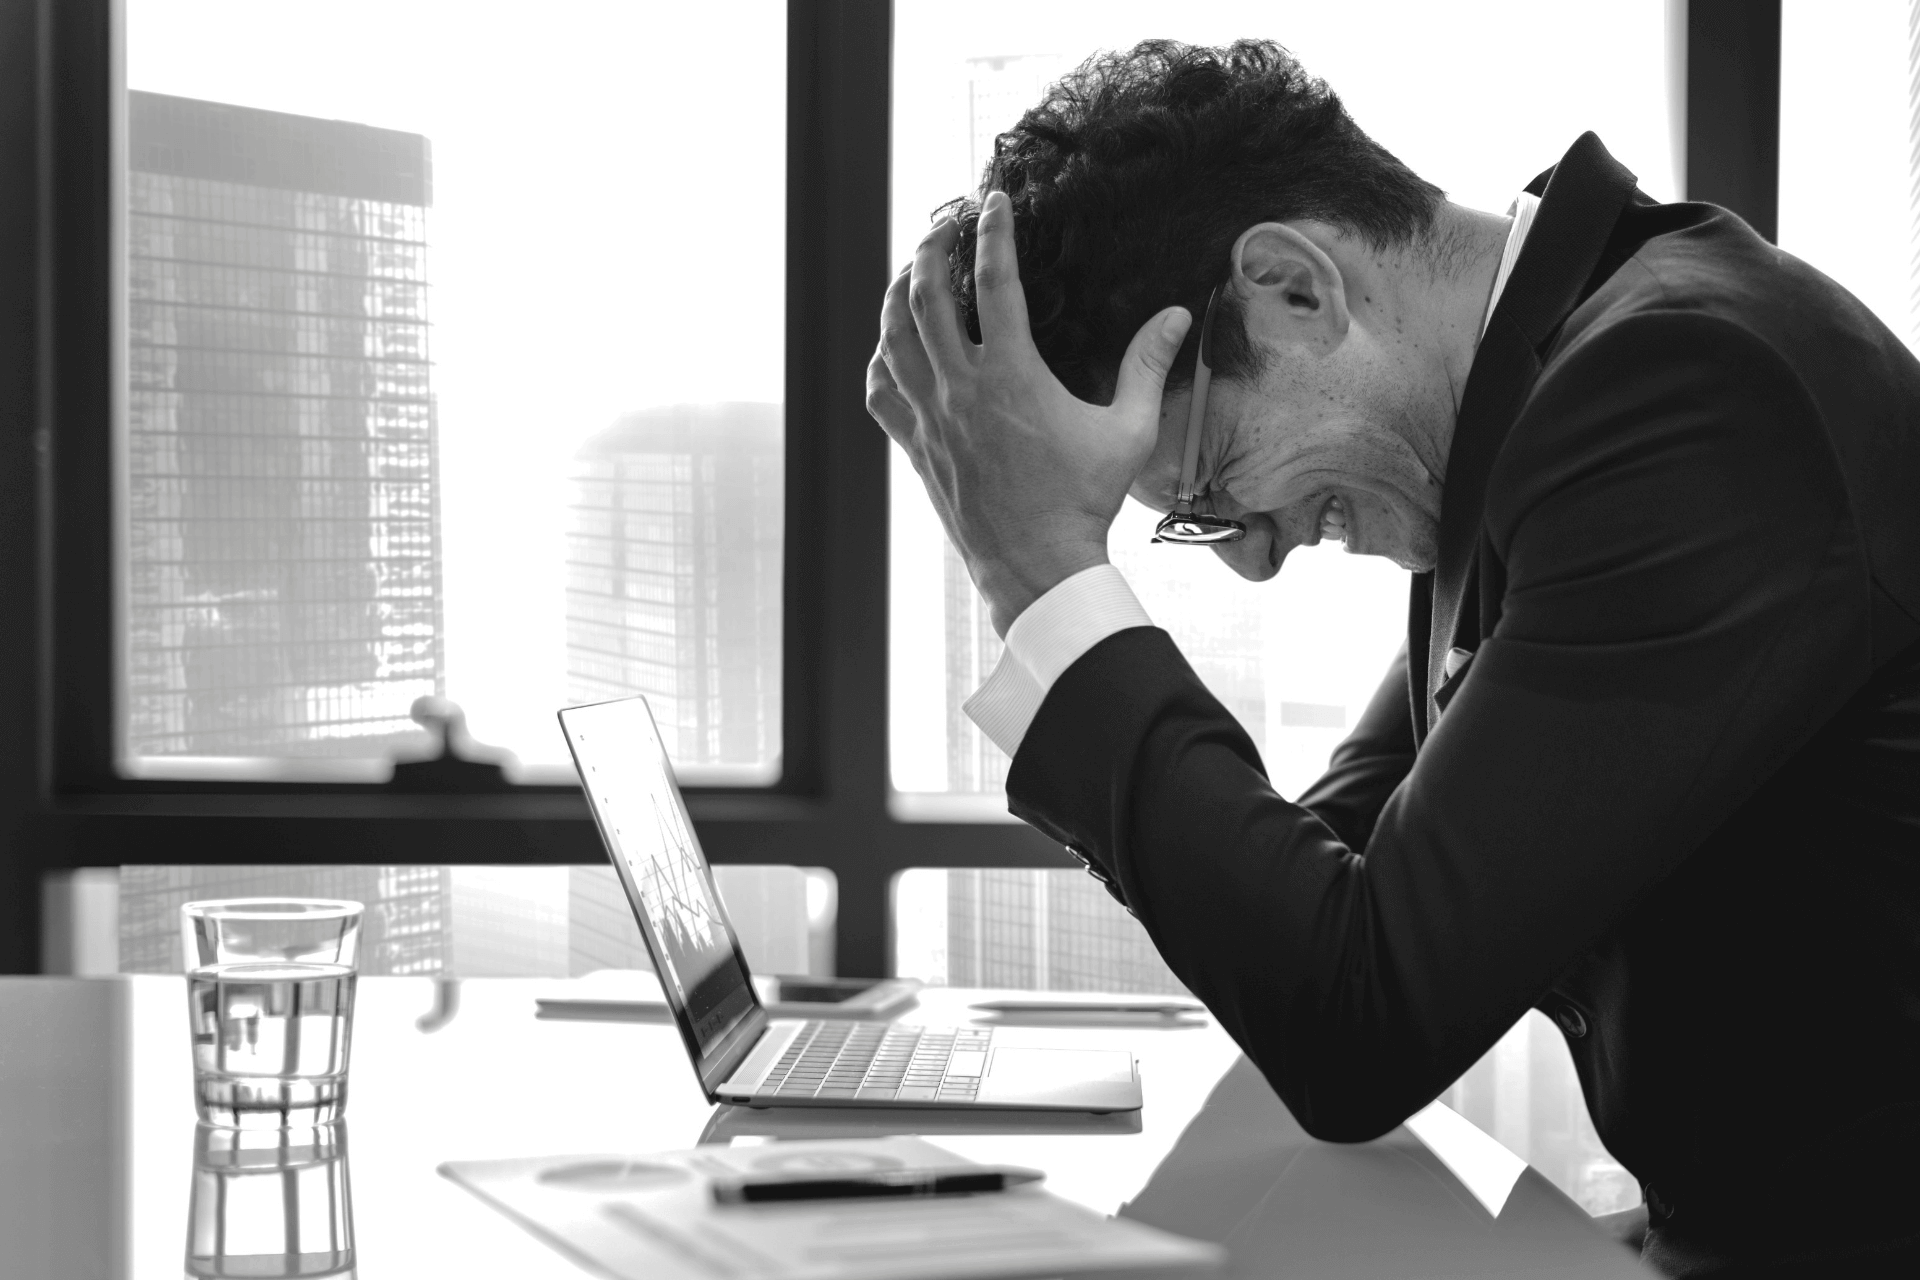 This image shows a man sitting at his desk with his hands on his head feeling fear about fundraising